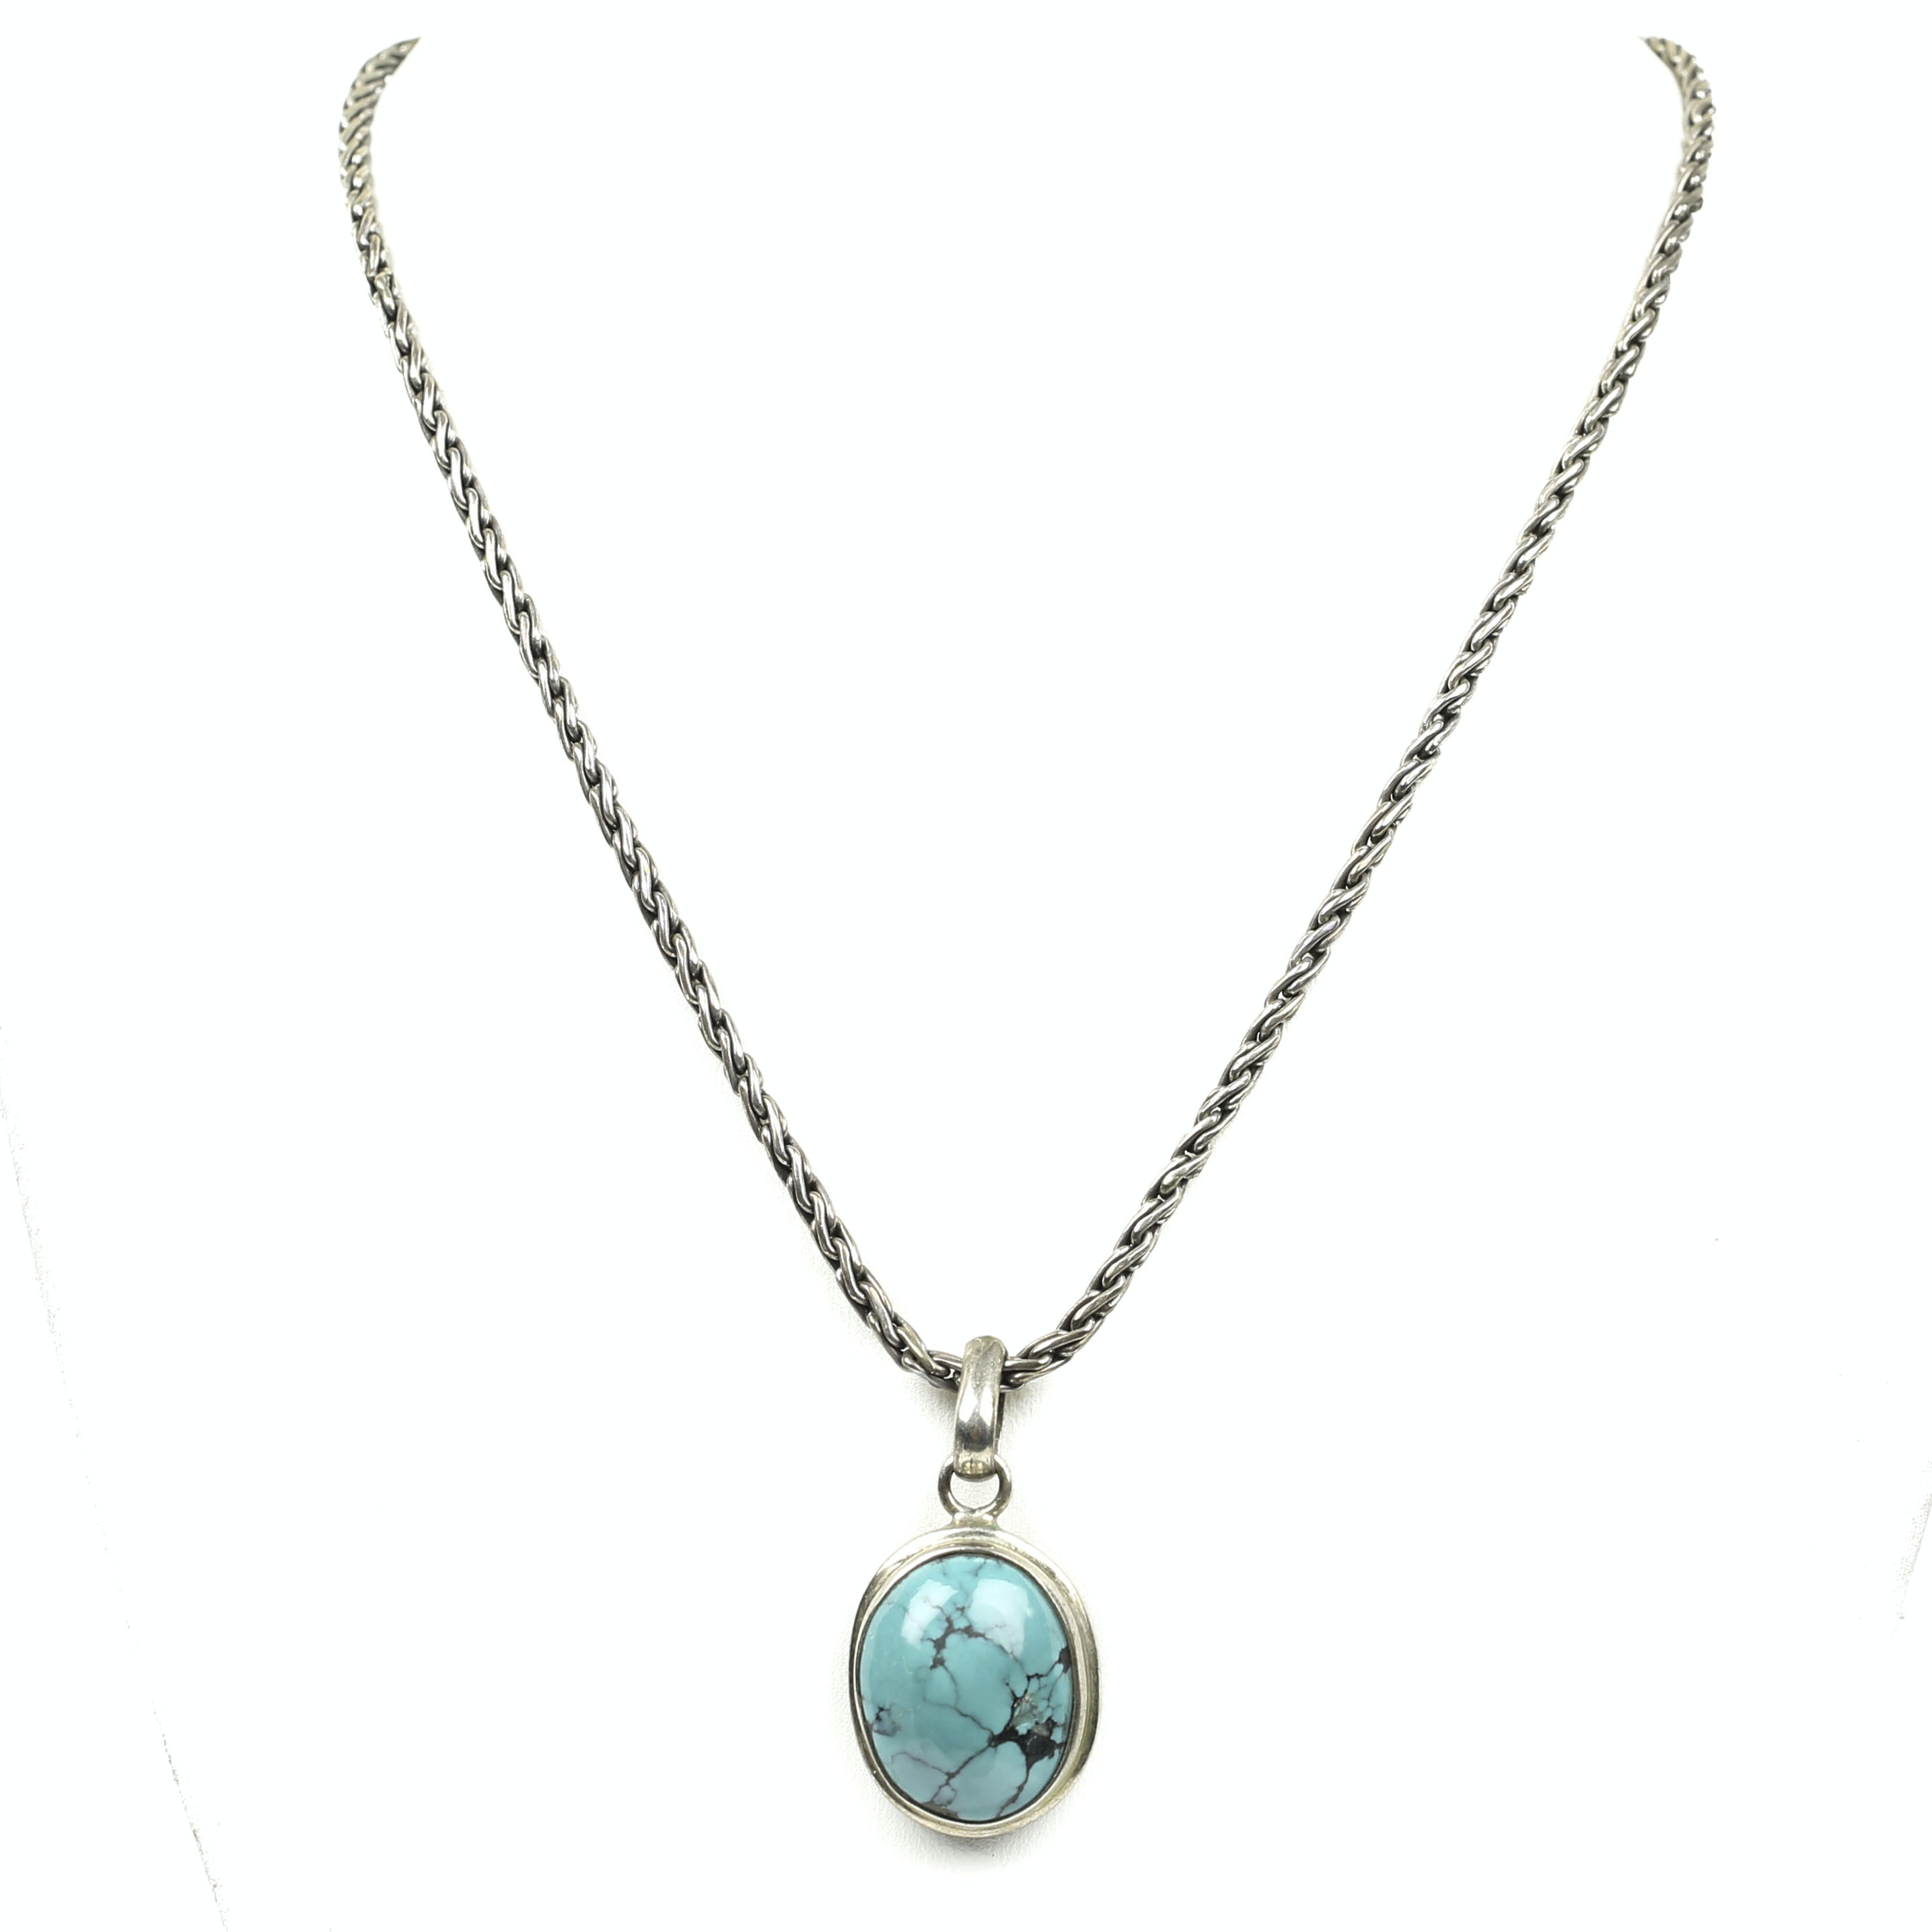 Sterling Silver Bezel Set Turquoise Pendant Necklace